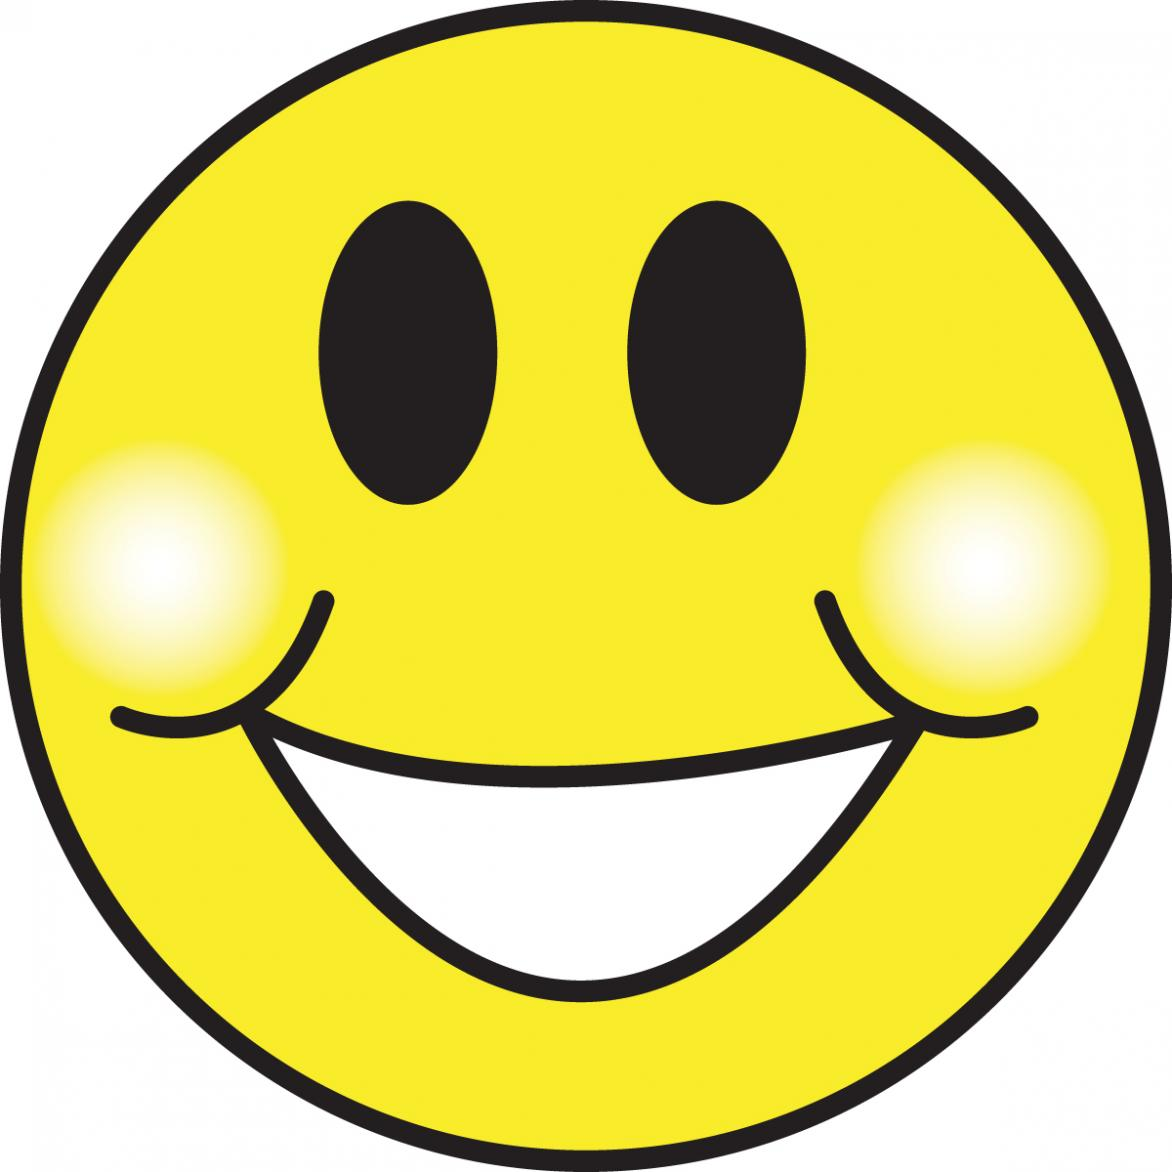 Free Cartoon Smiling Faces, Download Free Clip Art, Free.